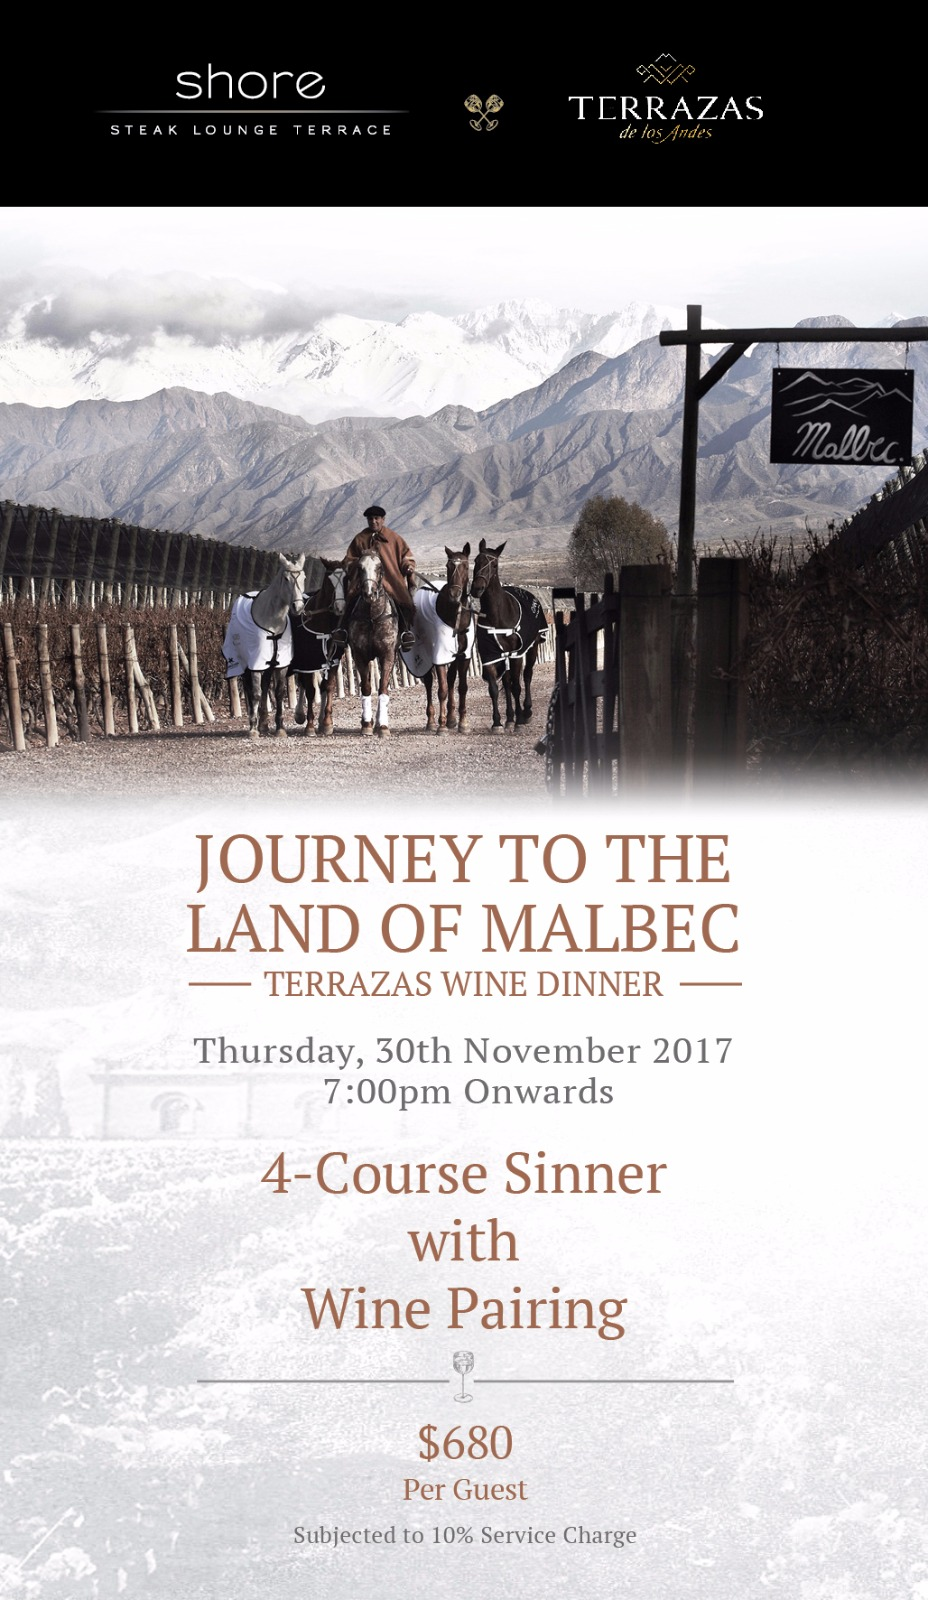 Journey To The Land Of Malbec Terrazas Wine Dinner At Shore